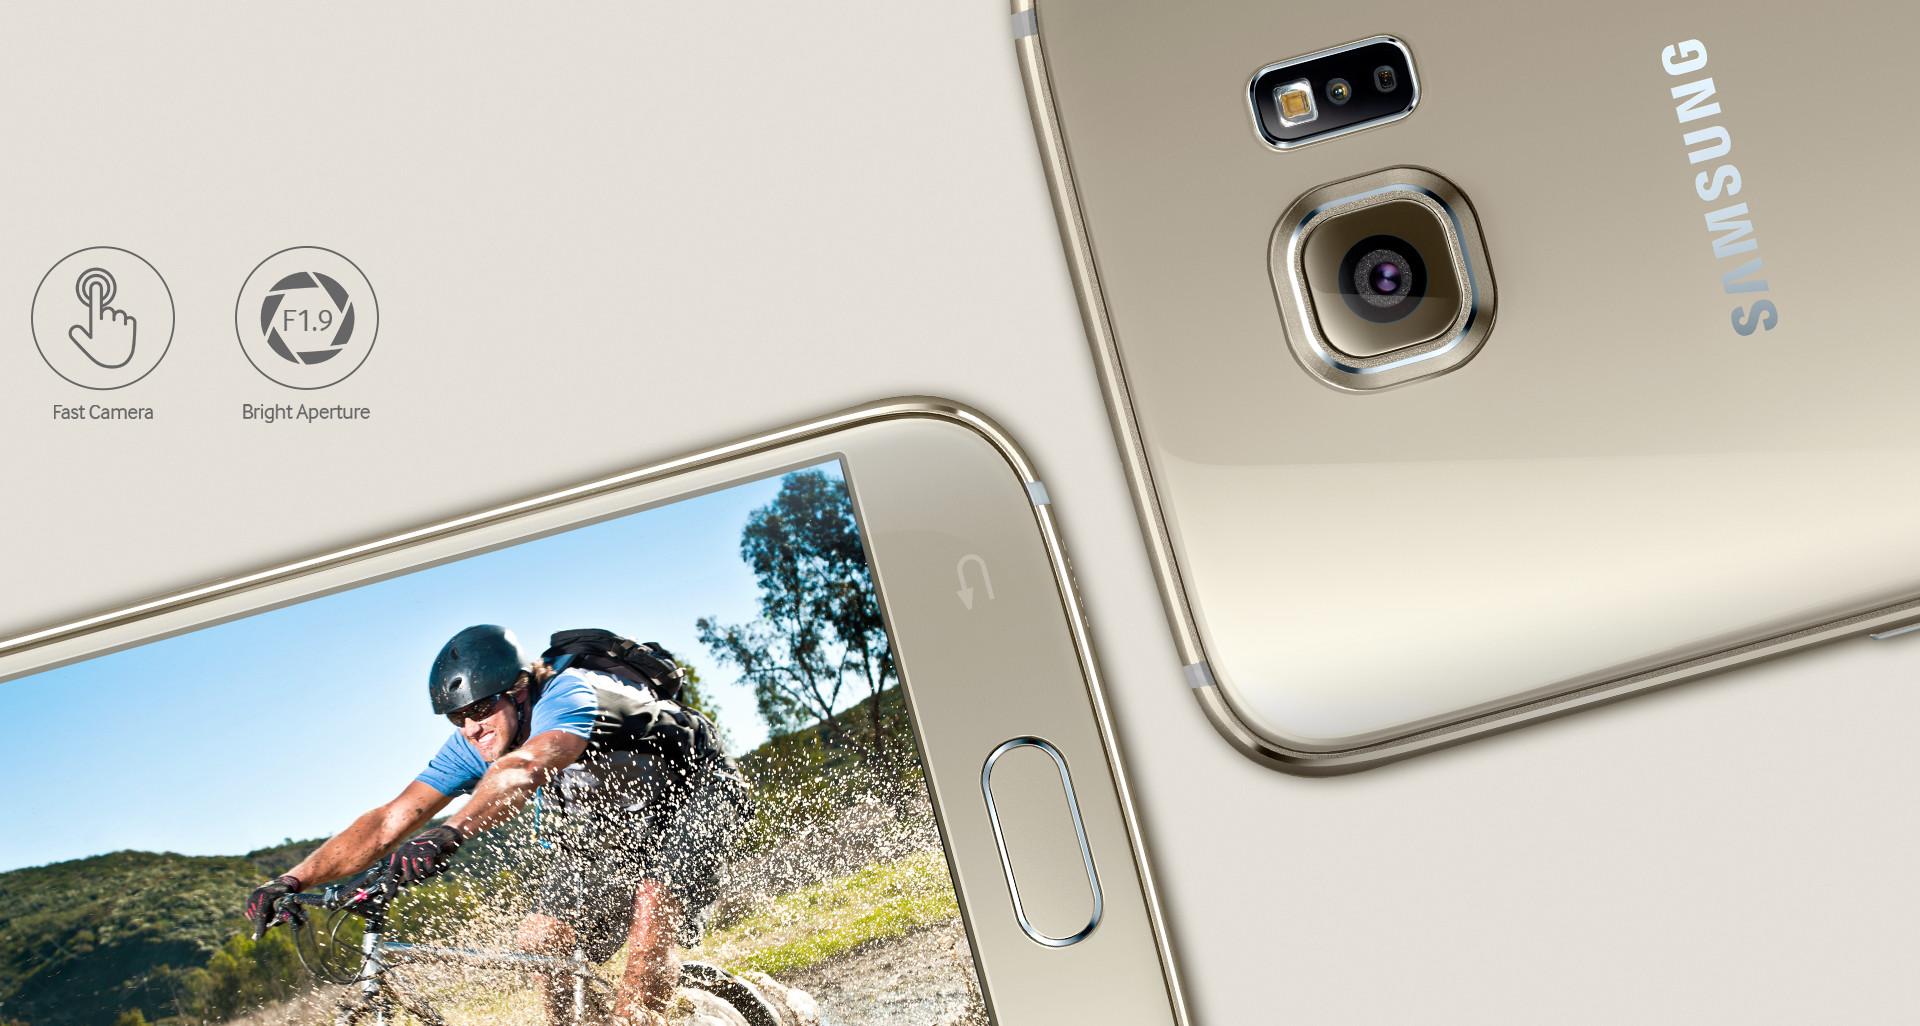 Here's why the gold platinum version of the Samsung Galaxy S6 is worth the wait